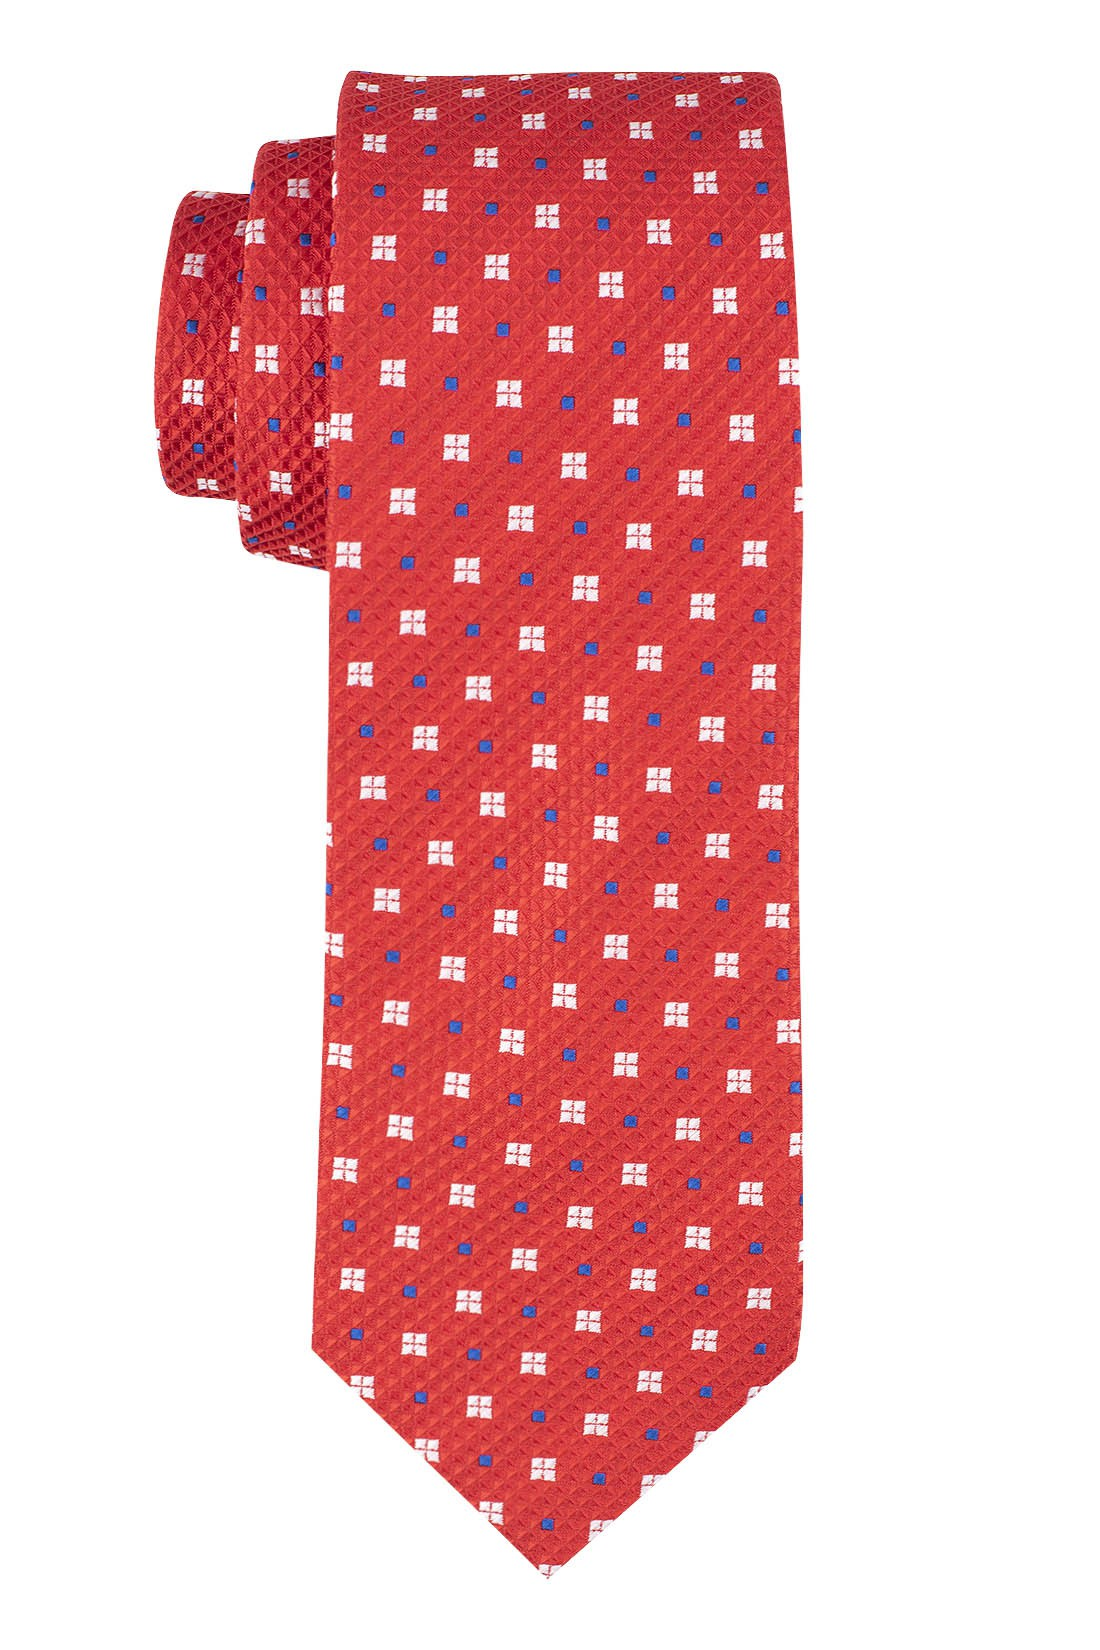 Red with White Floral 100% Microfiber Necktie